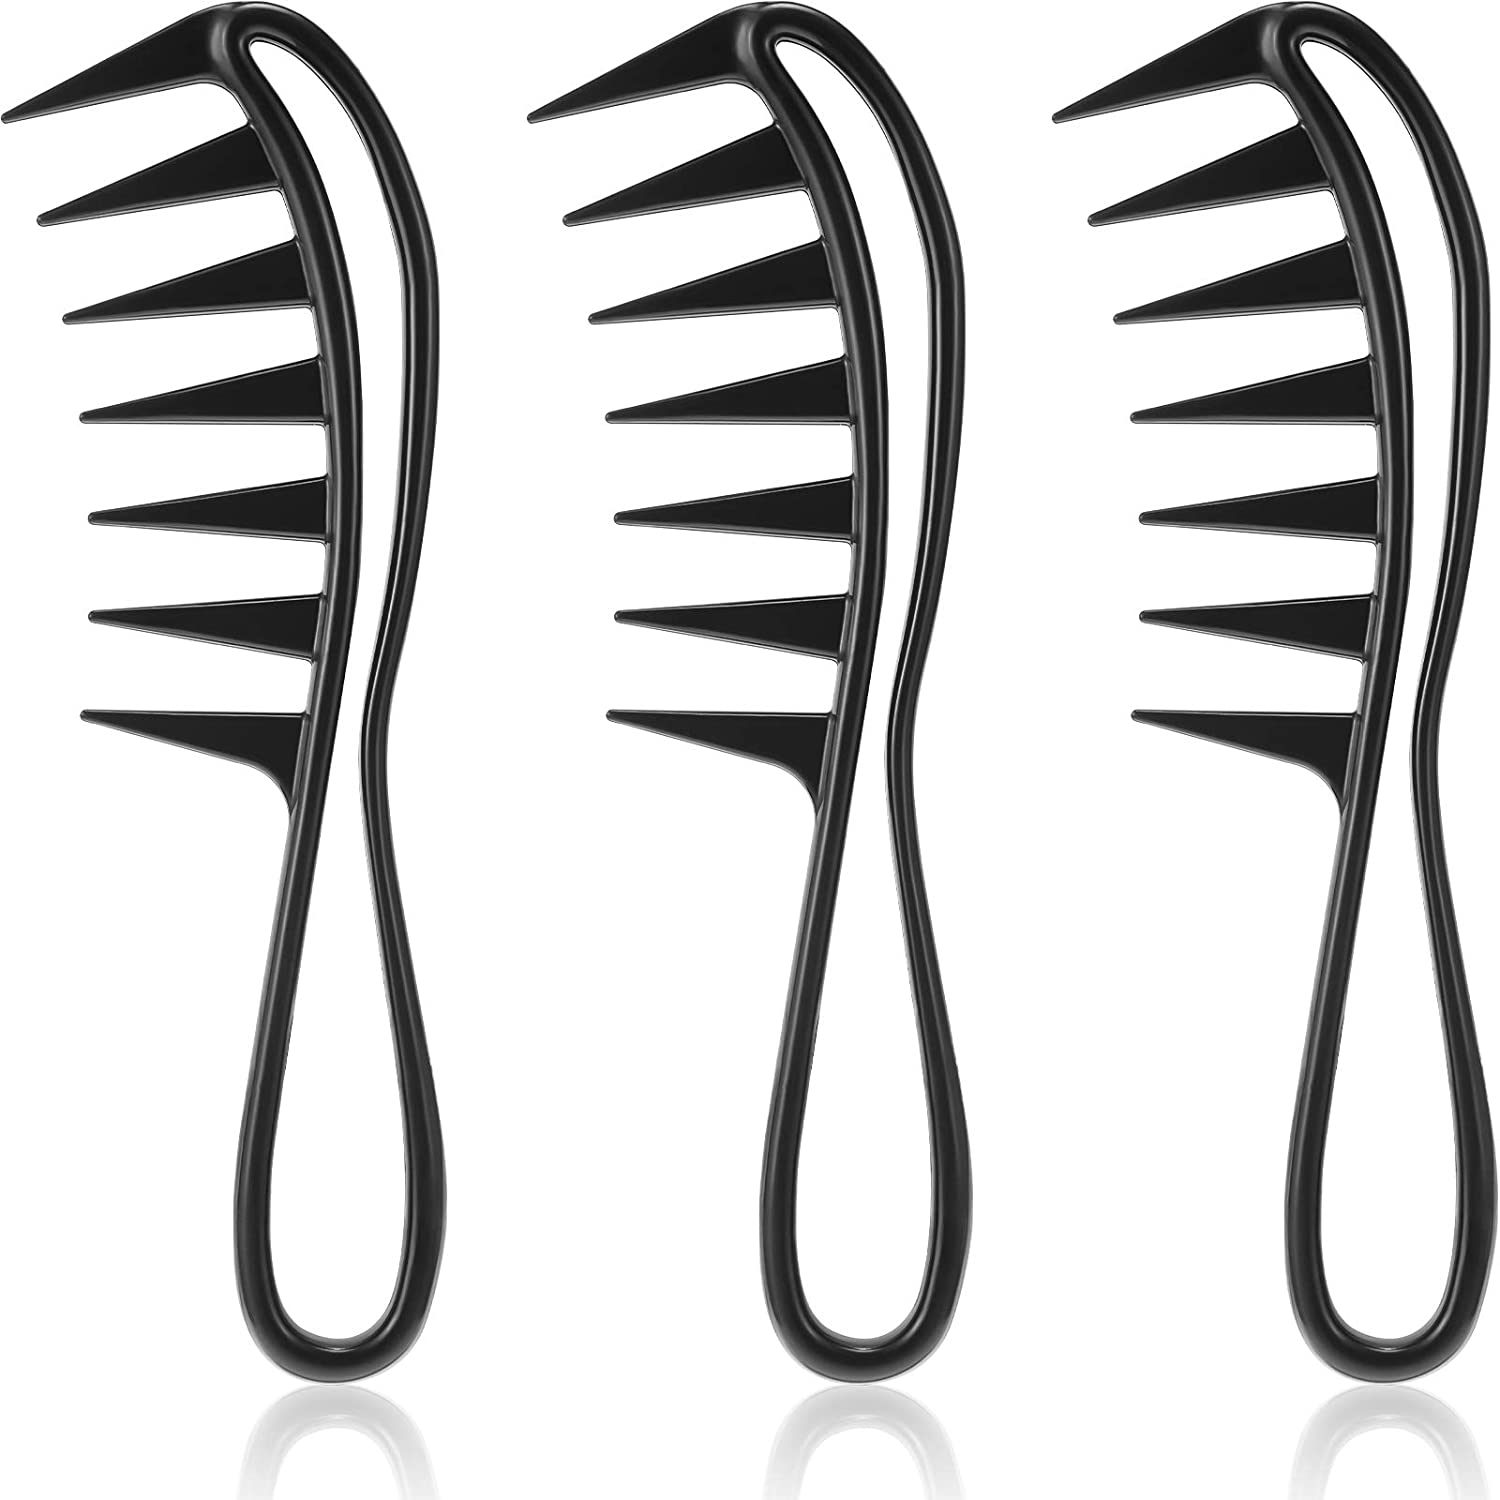 3 Our shop Tampa Mall OFFers the best service Pieces Wide Tooth Detangling Shower Sp Comb Flexible